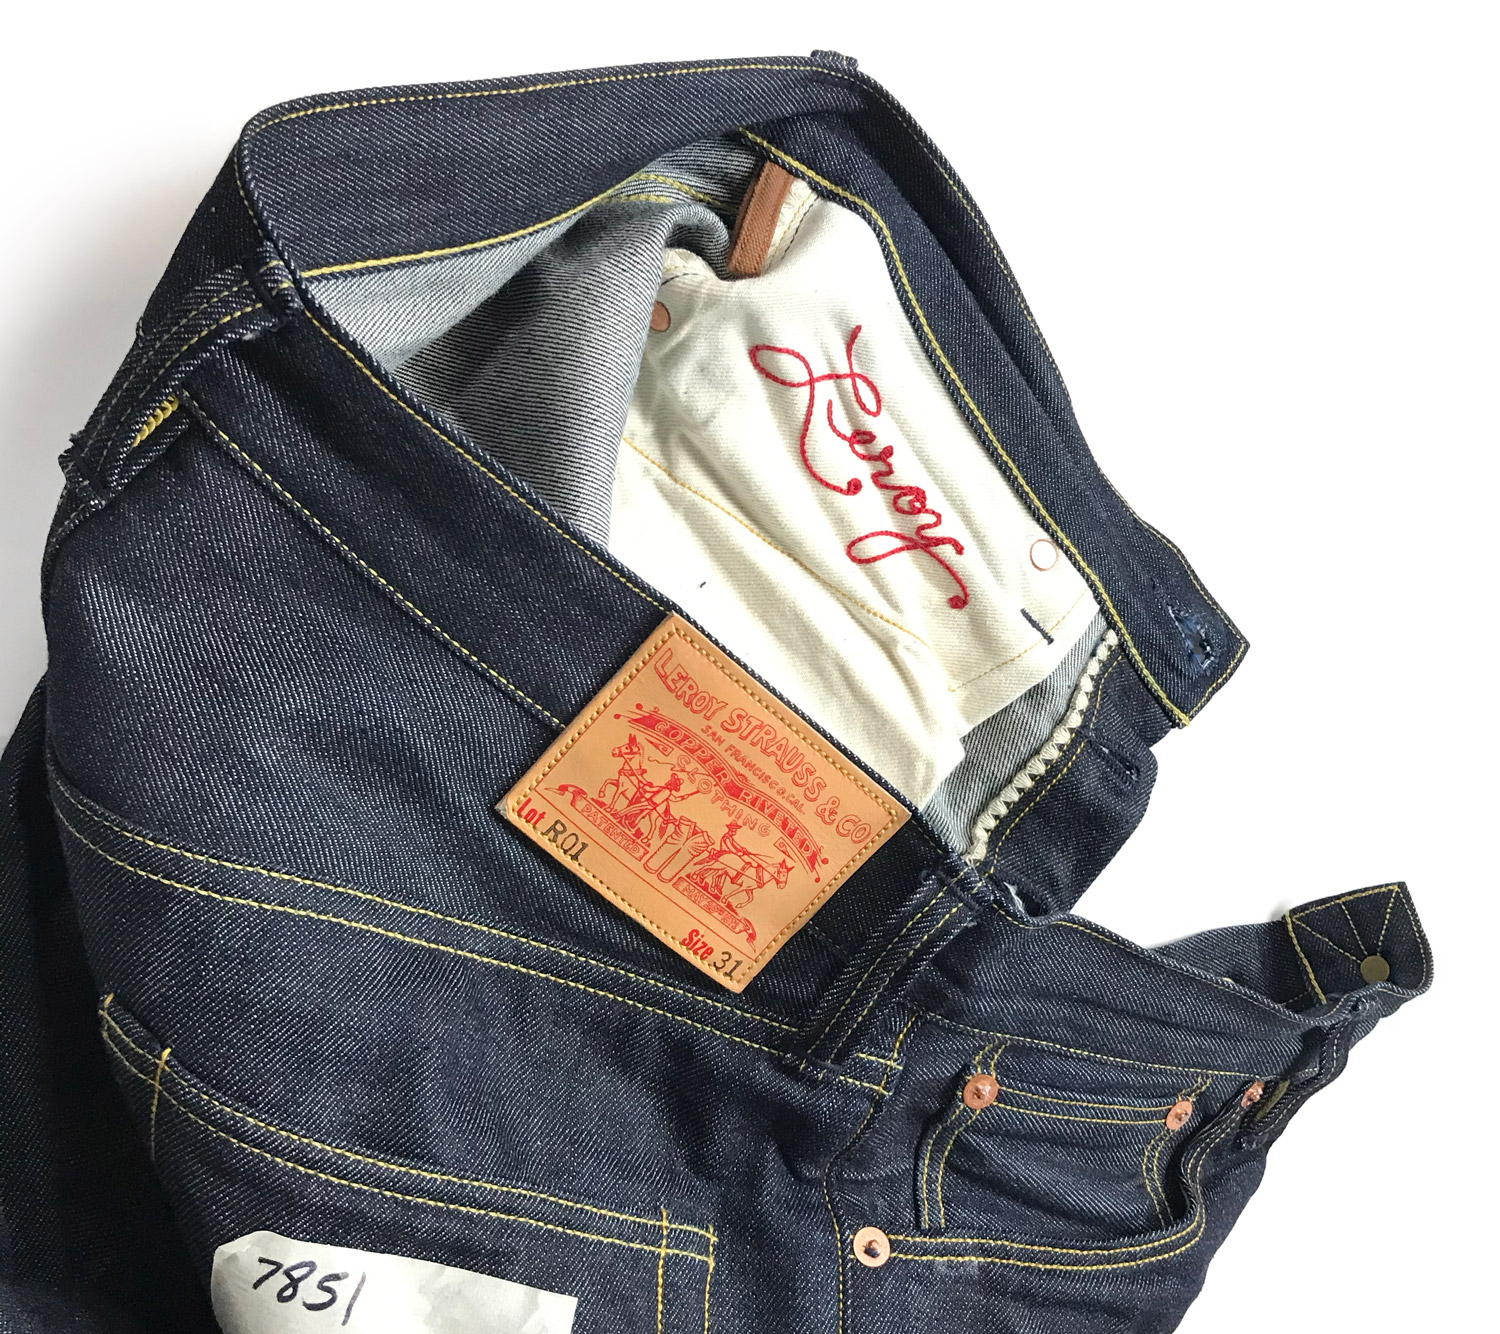 Close-up details of Roy Denim's R01 limited batch Leroy Strauss jeans